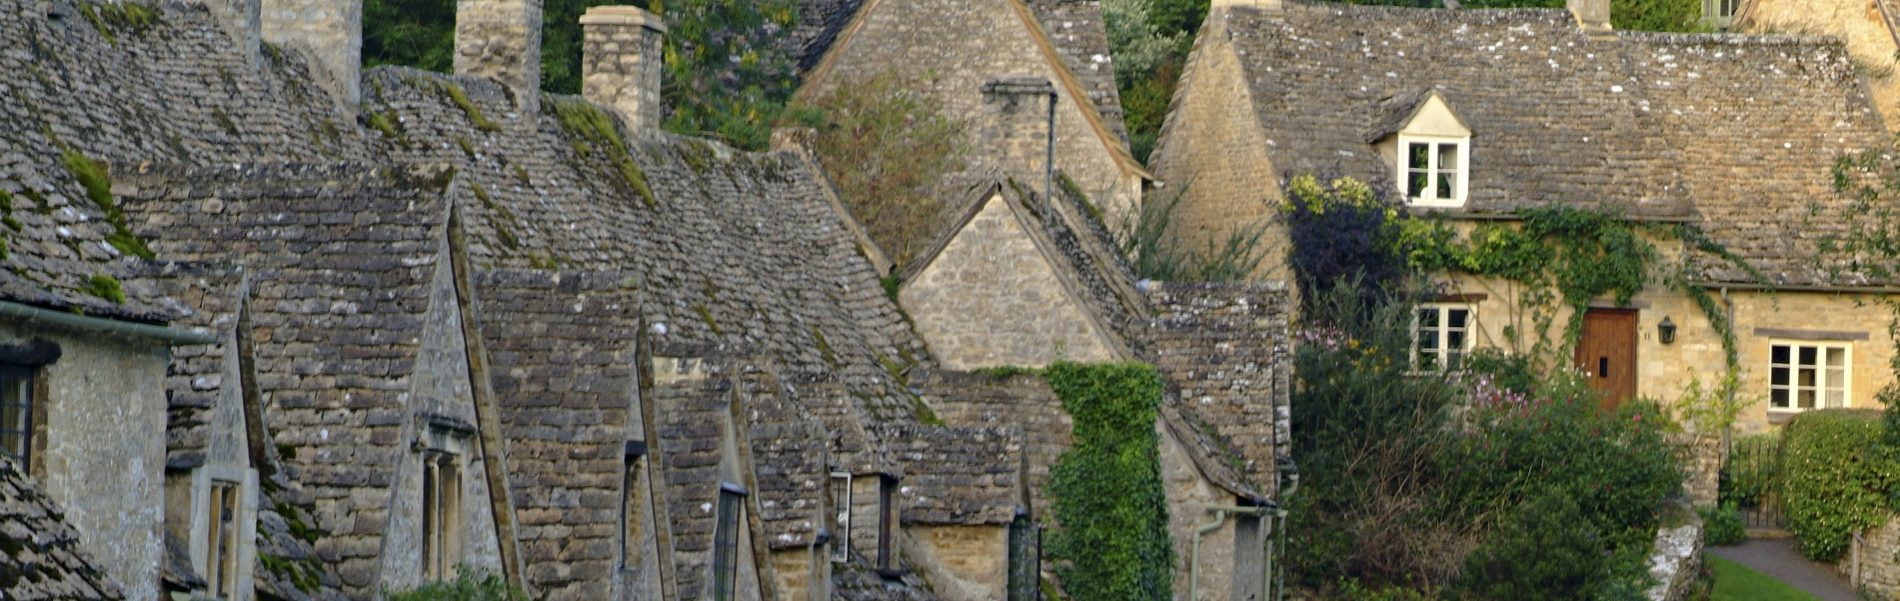 England Tours - Cotswolds